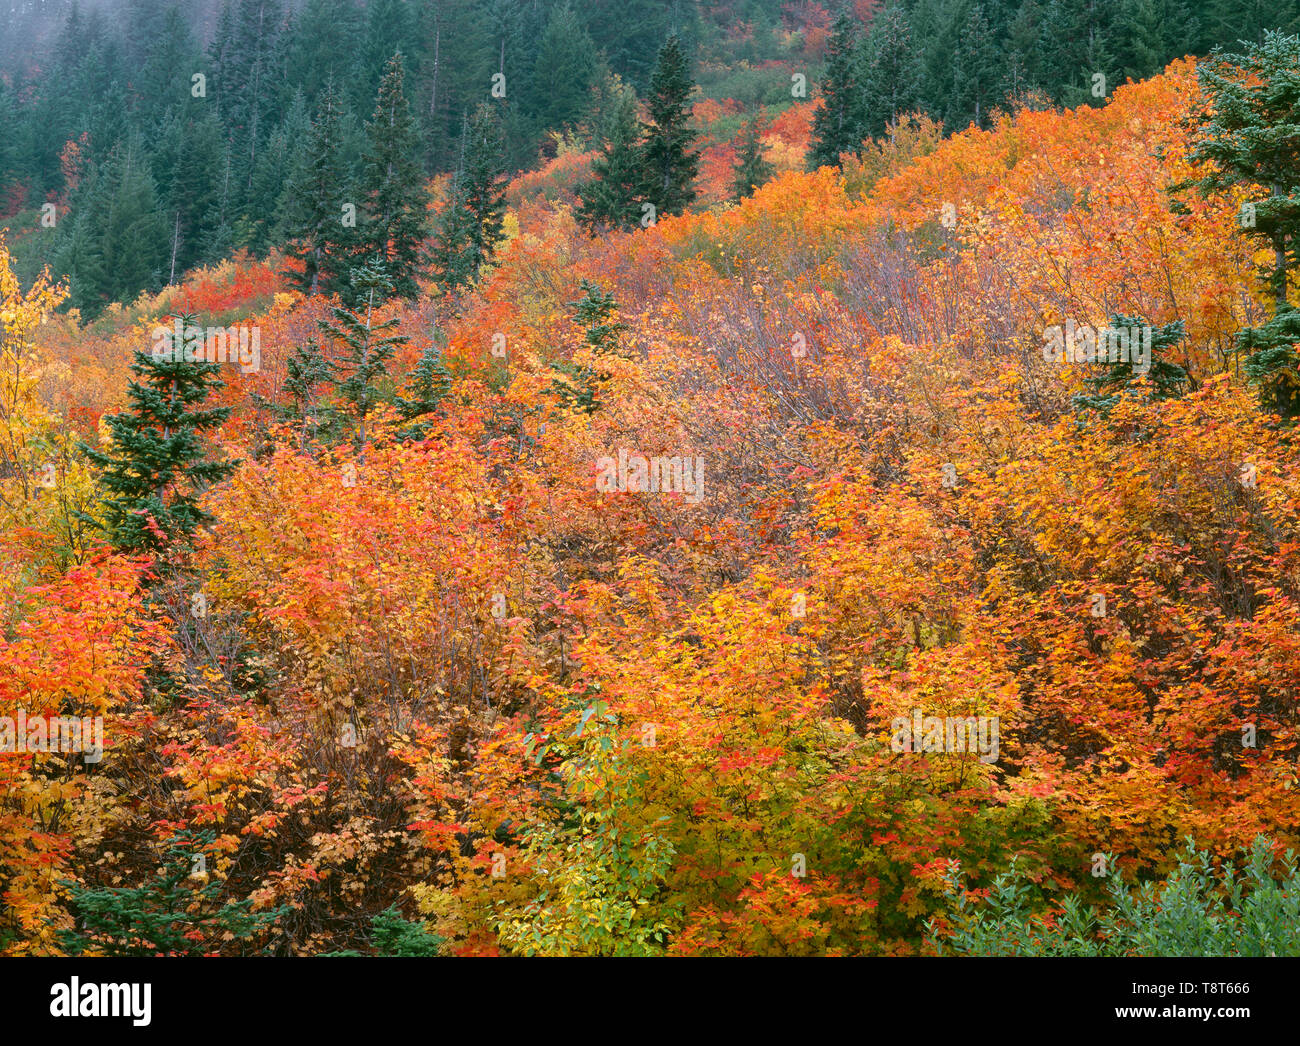 USA, Washington, Mt. Baker Snoqualmie National Forest, Fall colors of vine maple and scattered conifers near Stevens Pass. - Stock Image